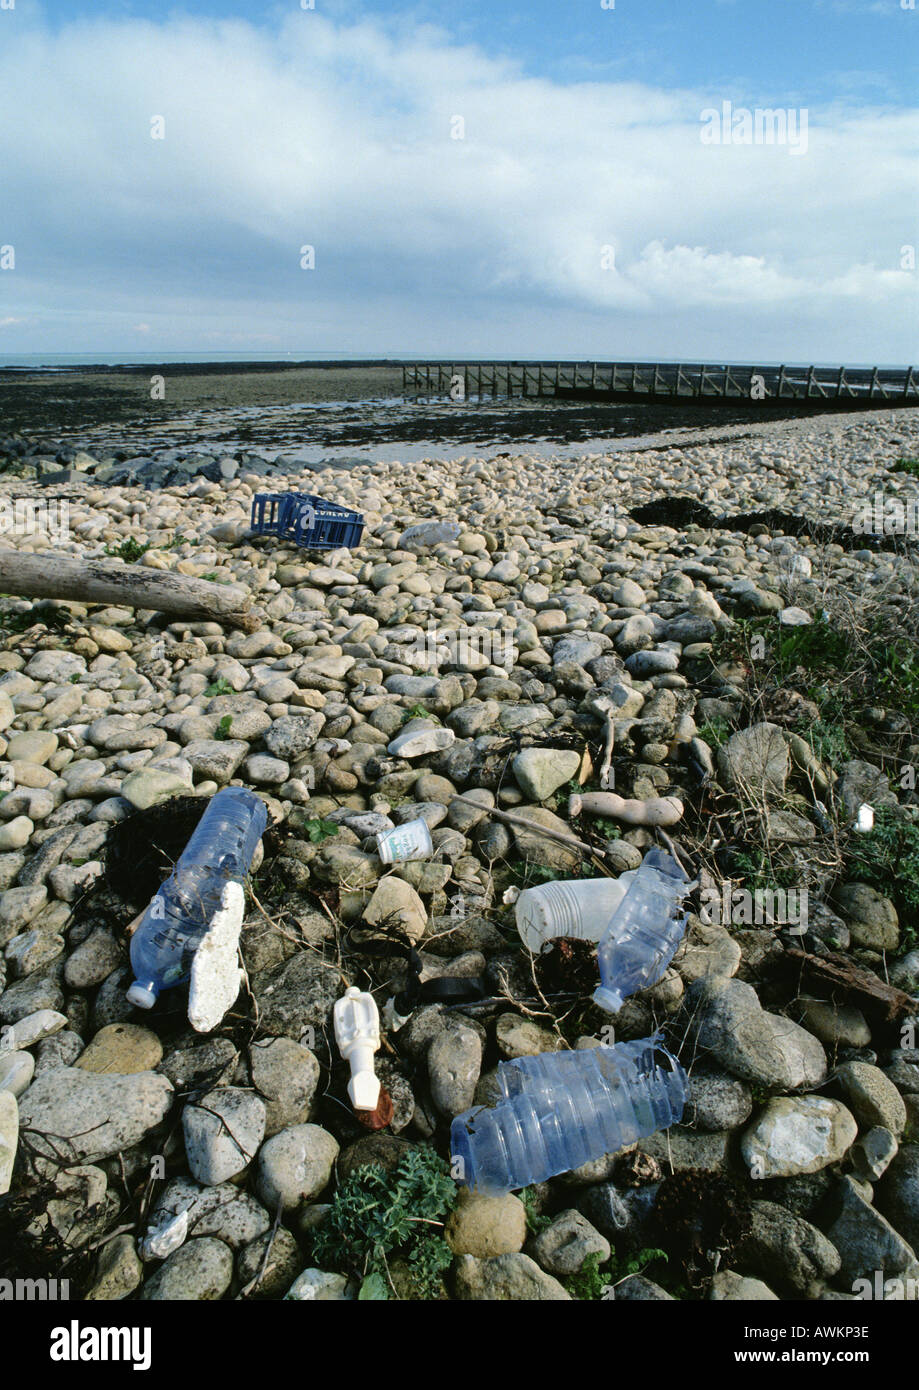 Trash scattered on rocky beach Stock Photo